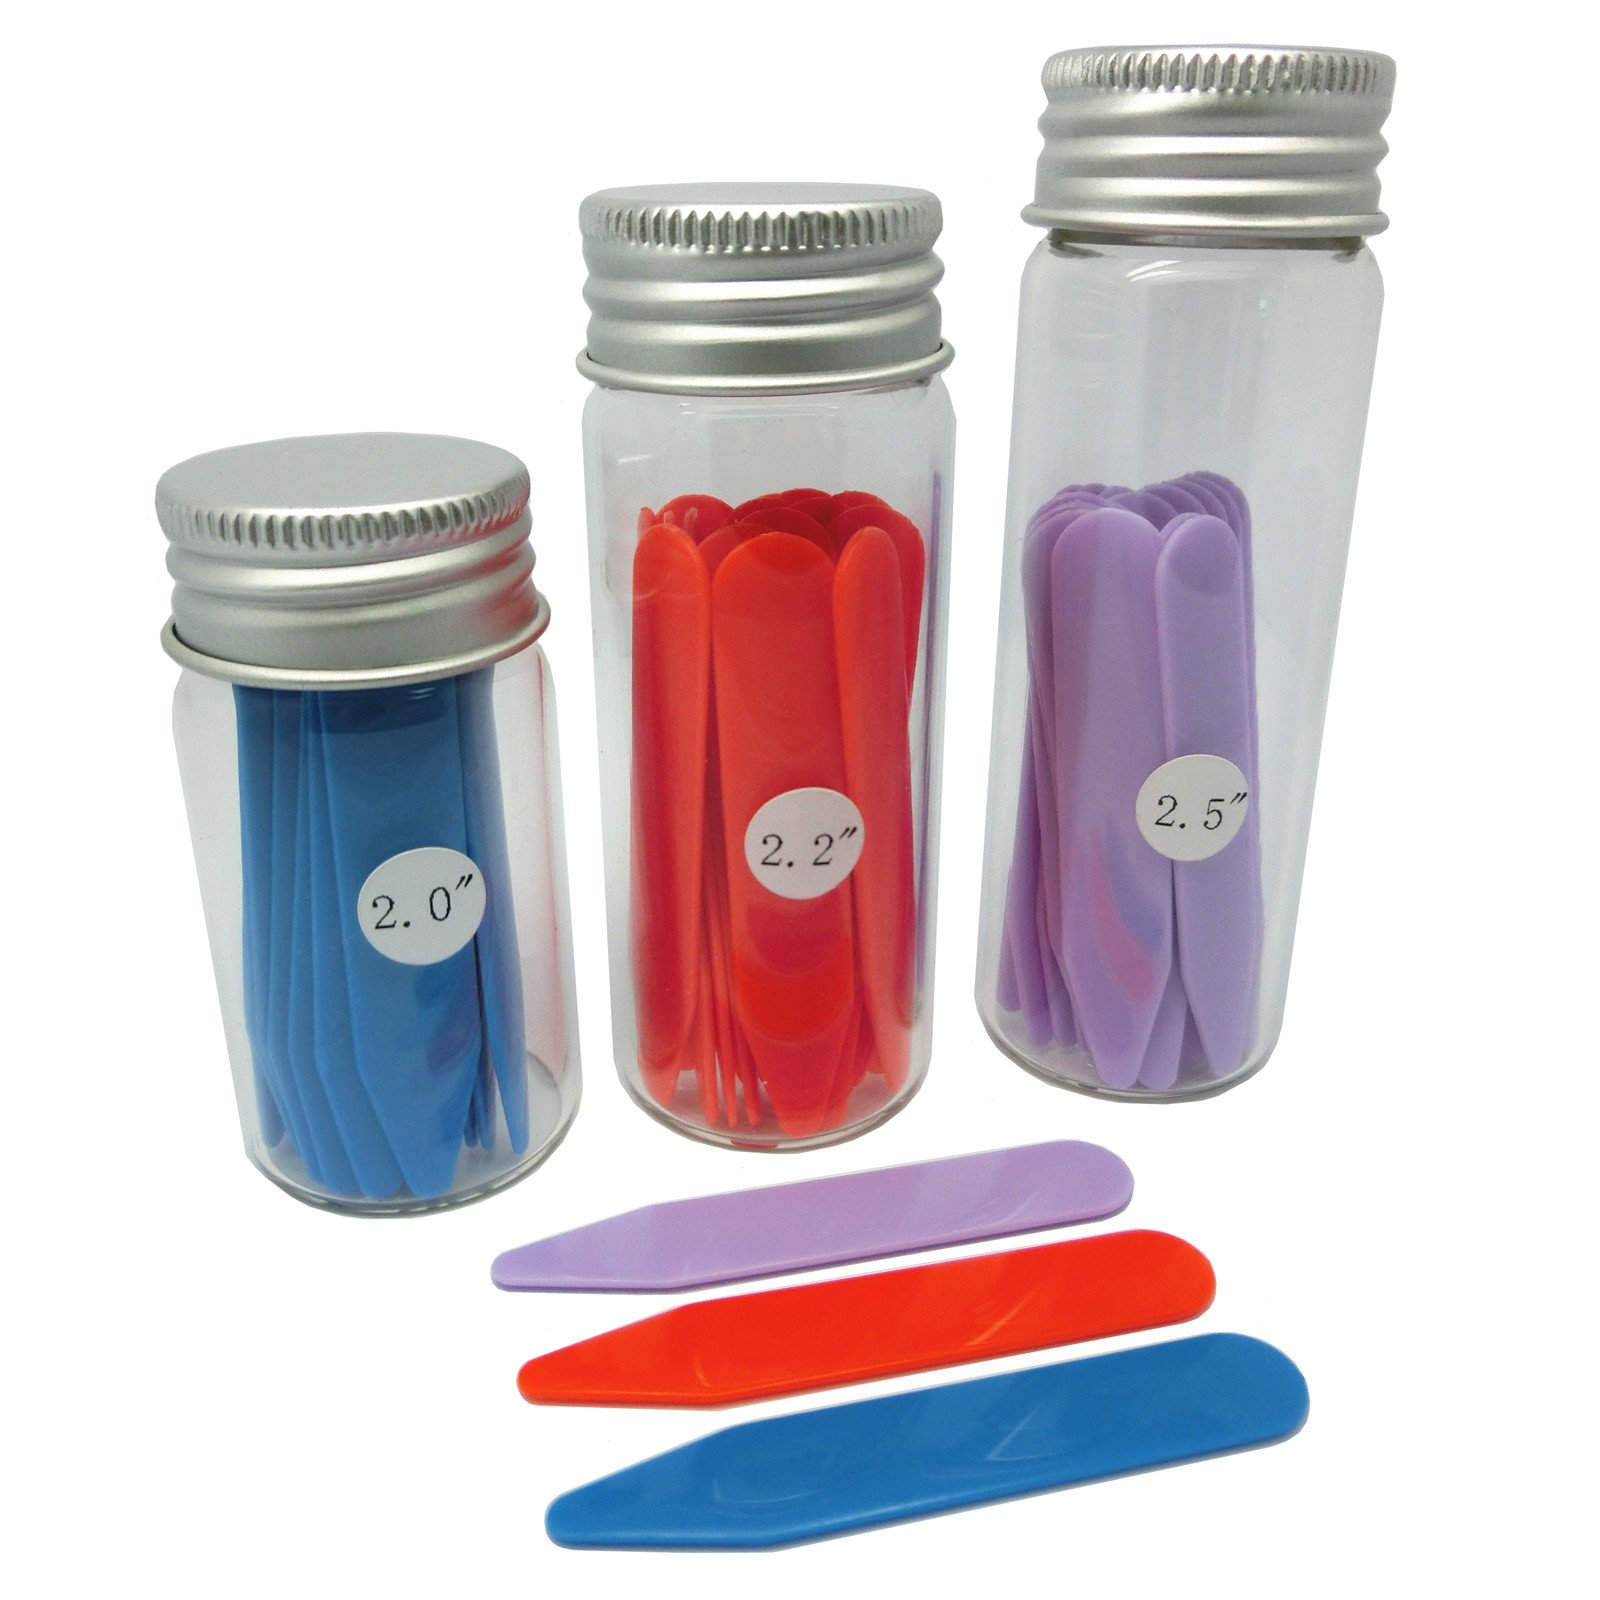 Shang Zun 48 Pcs Plastic Collar Stays in 3 Glass Bottles, 3 Colors 3 Sizes